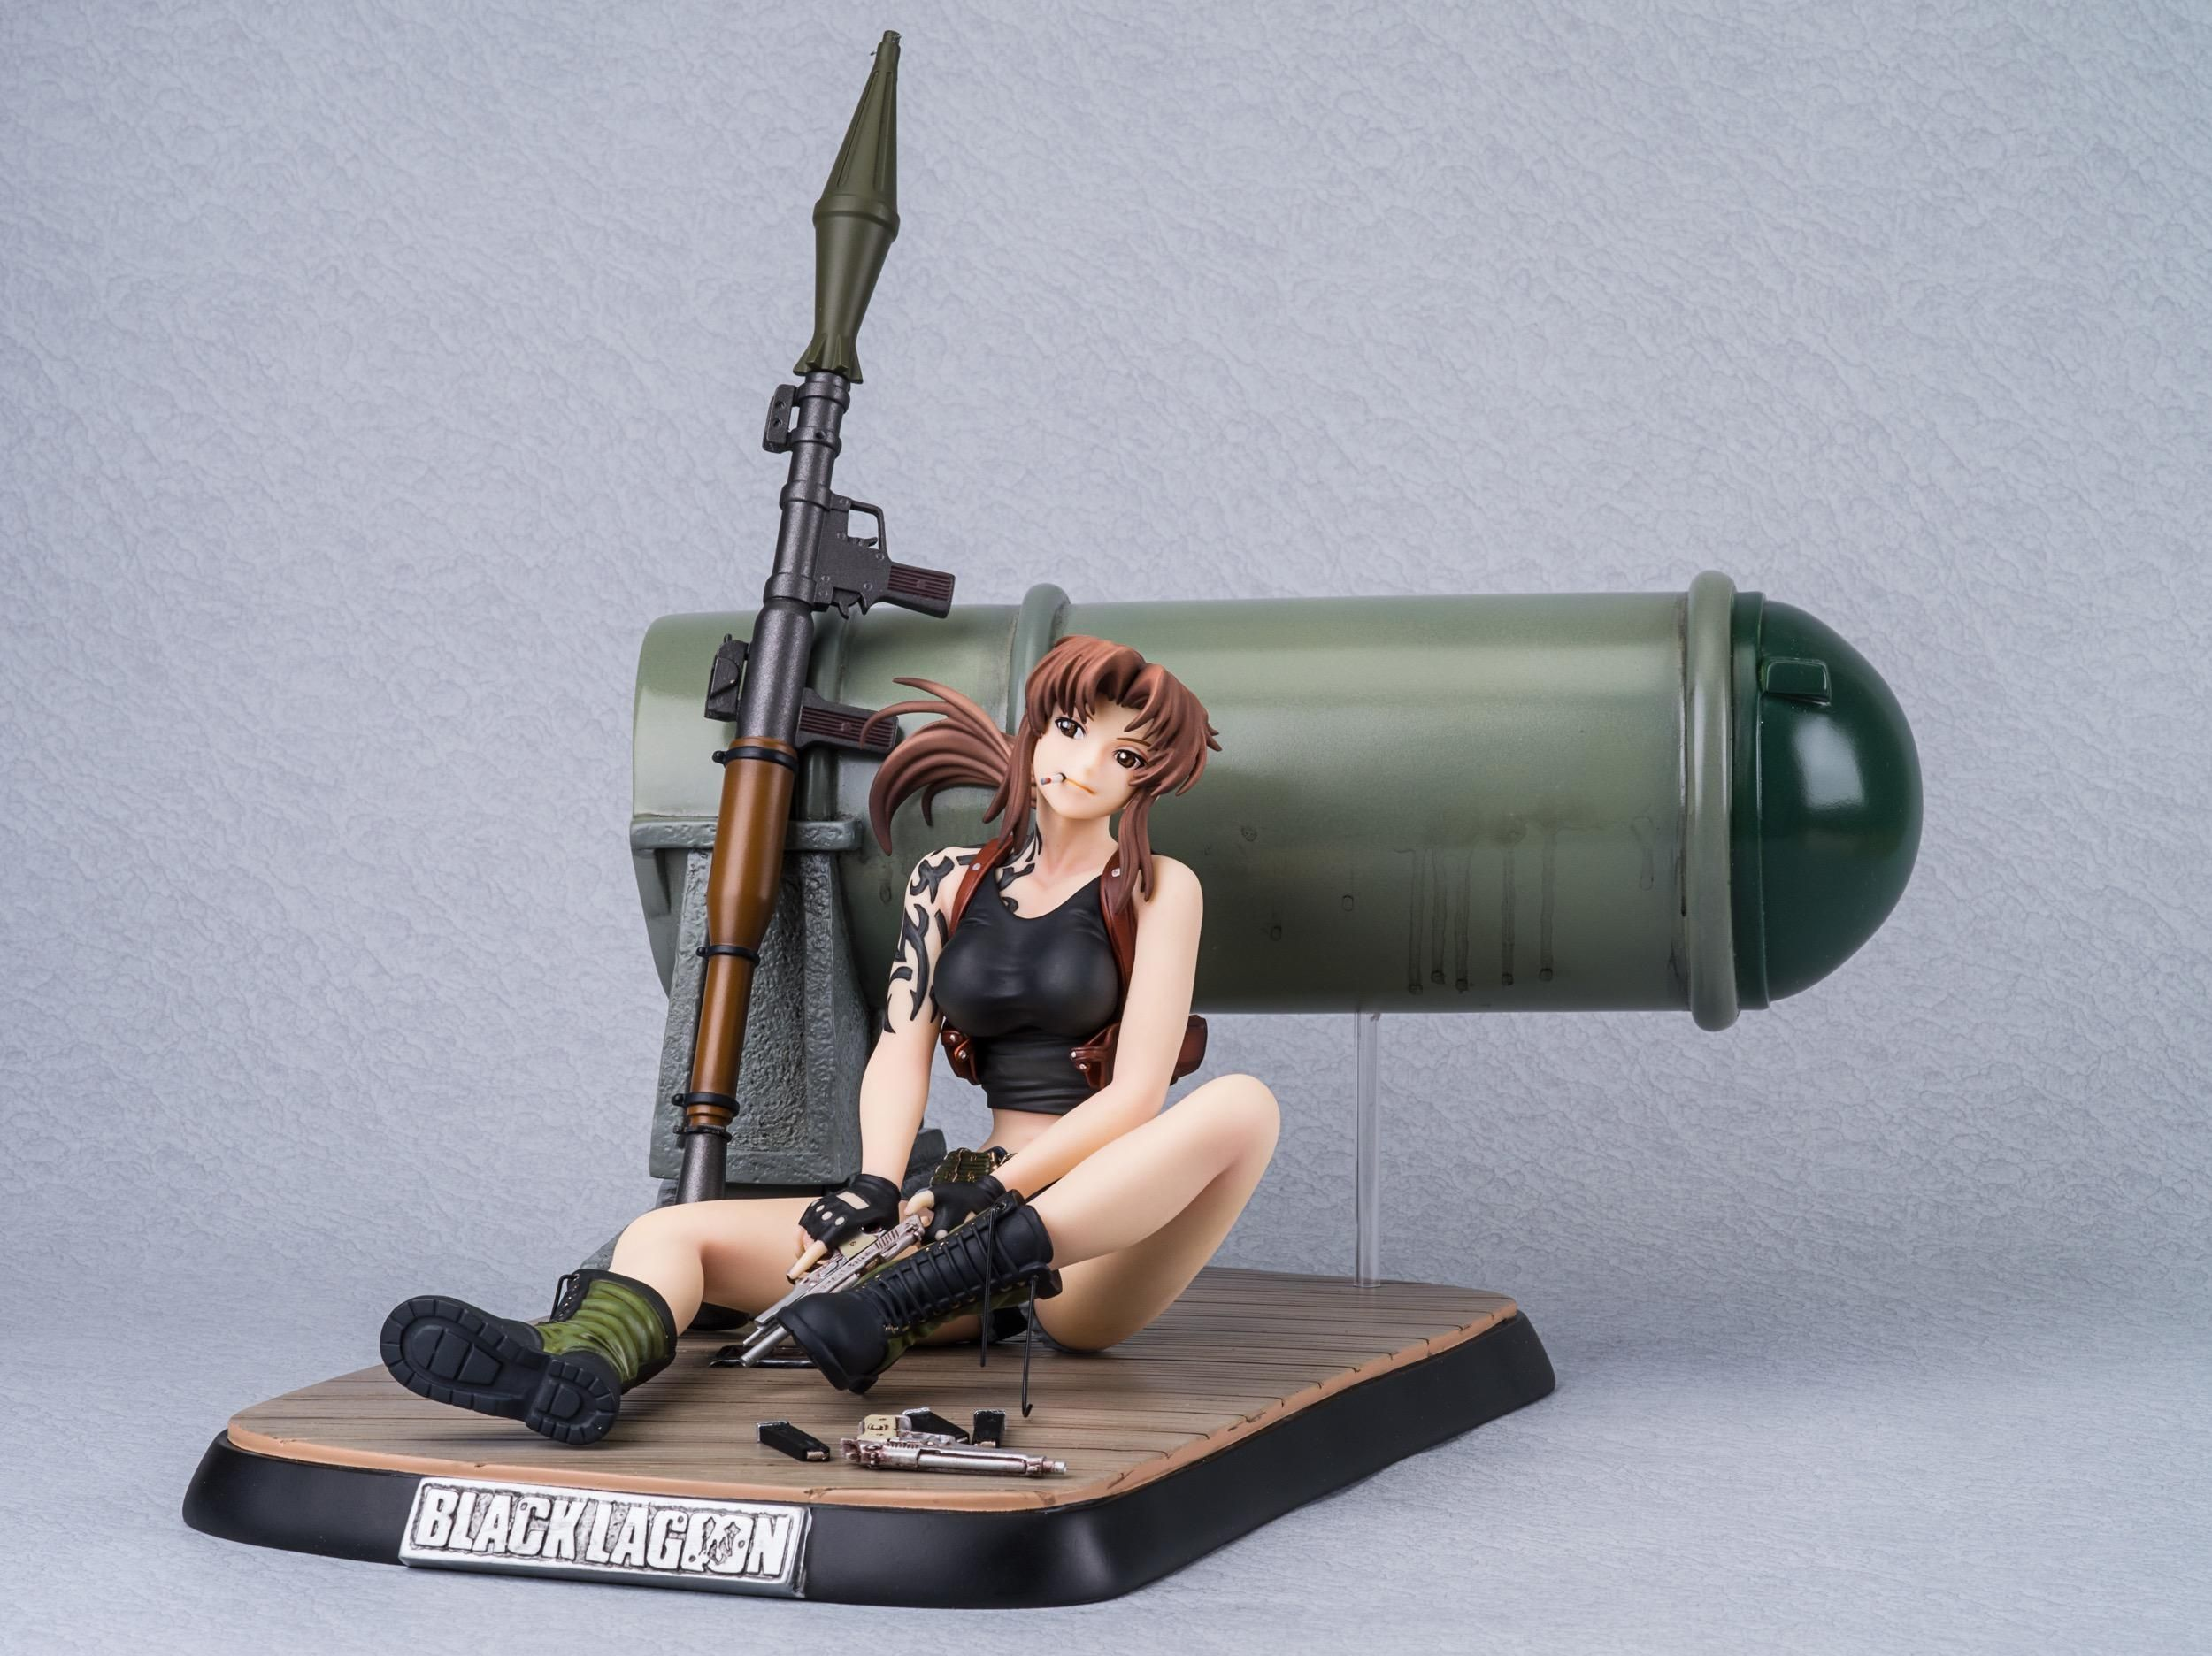 For those absolutely in love with Revy from Black Lagoon, here's ...